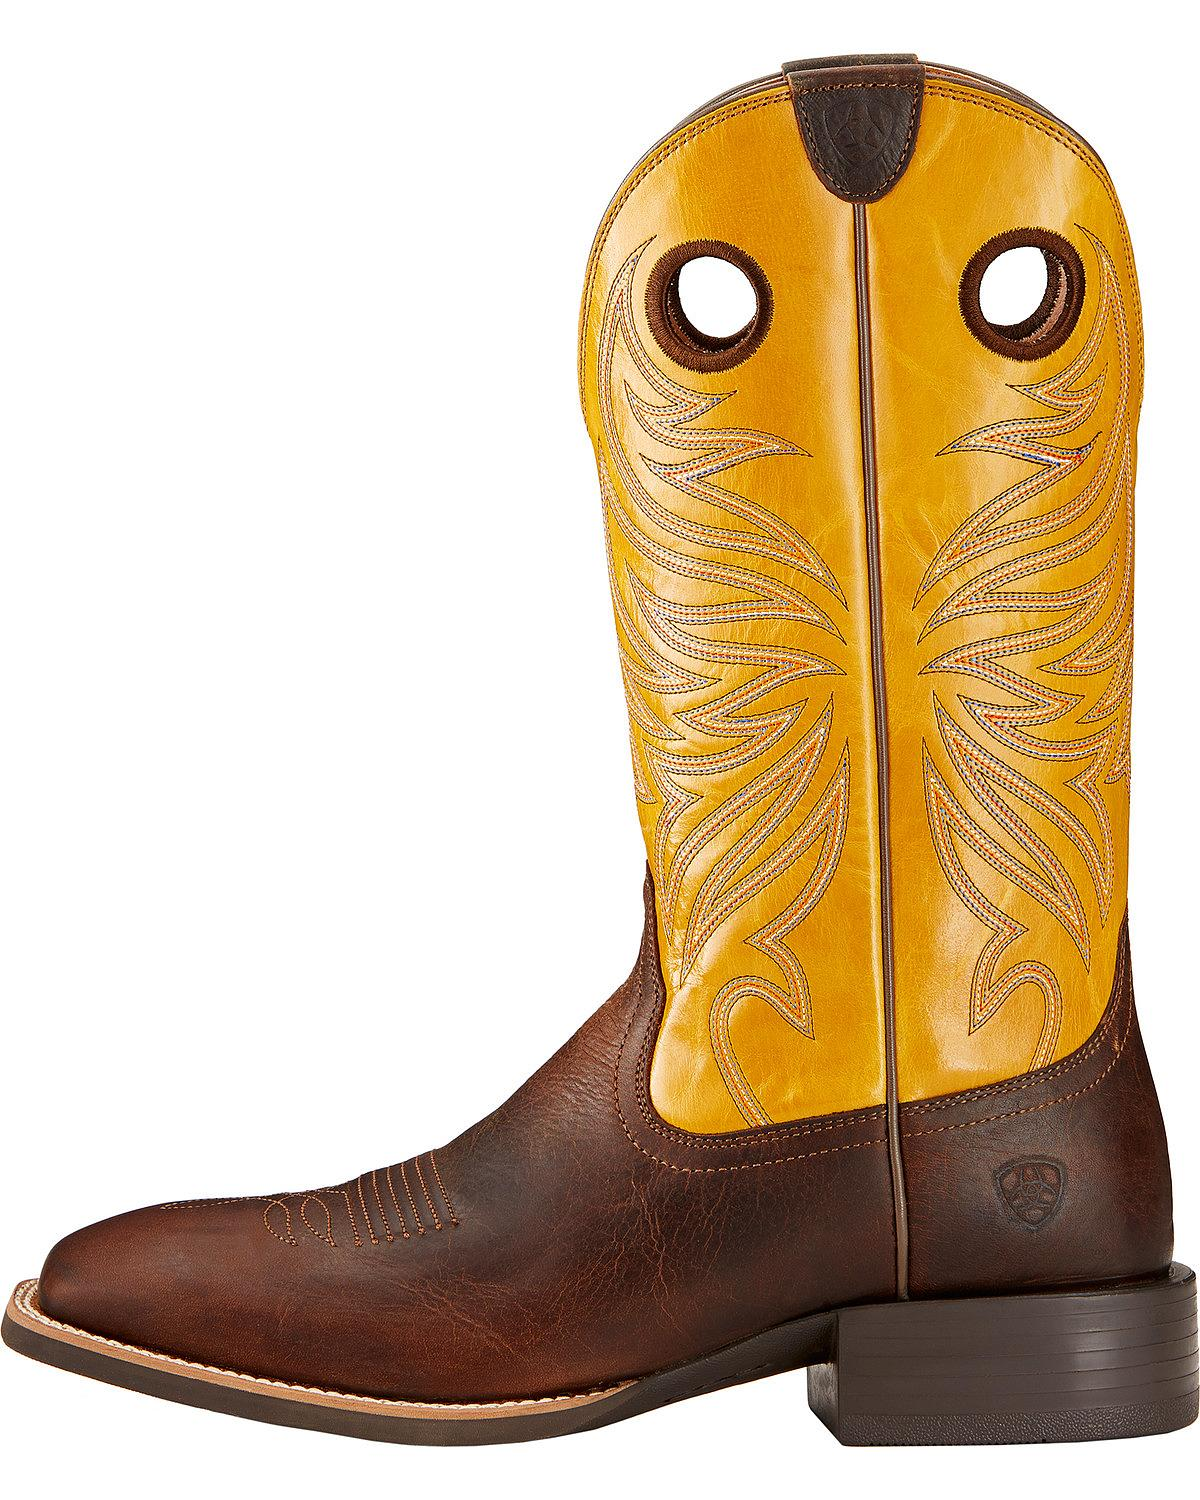 Summer 2018 fashion trends: cowboy boots 93